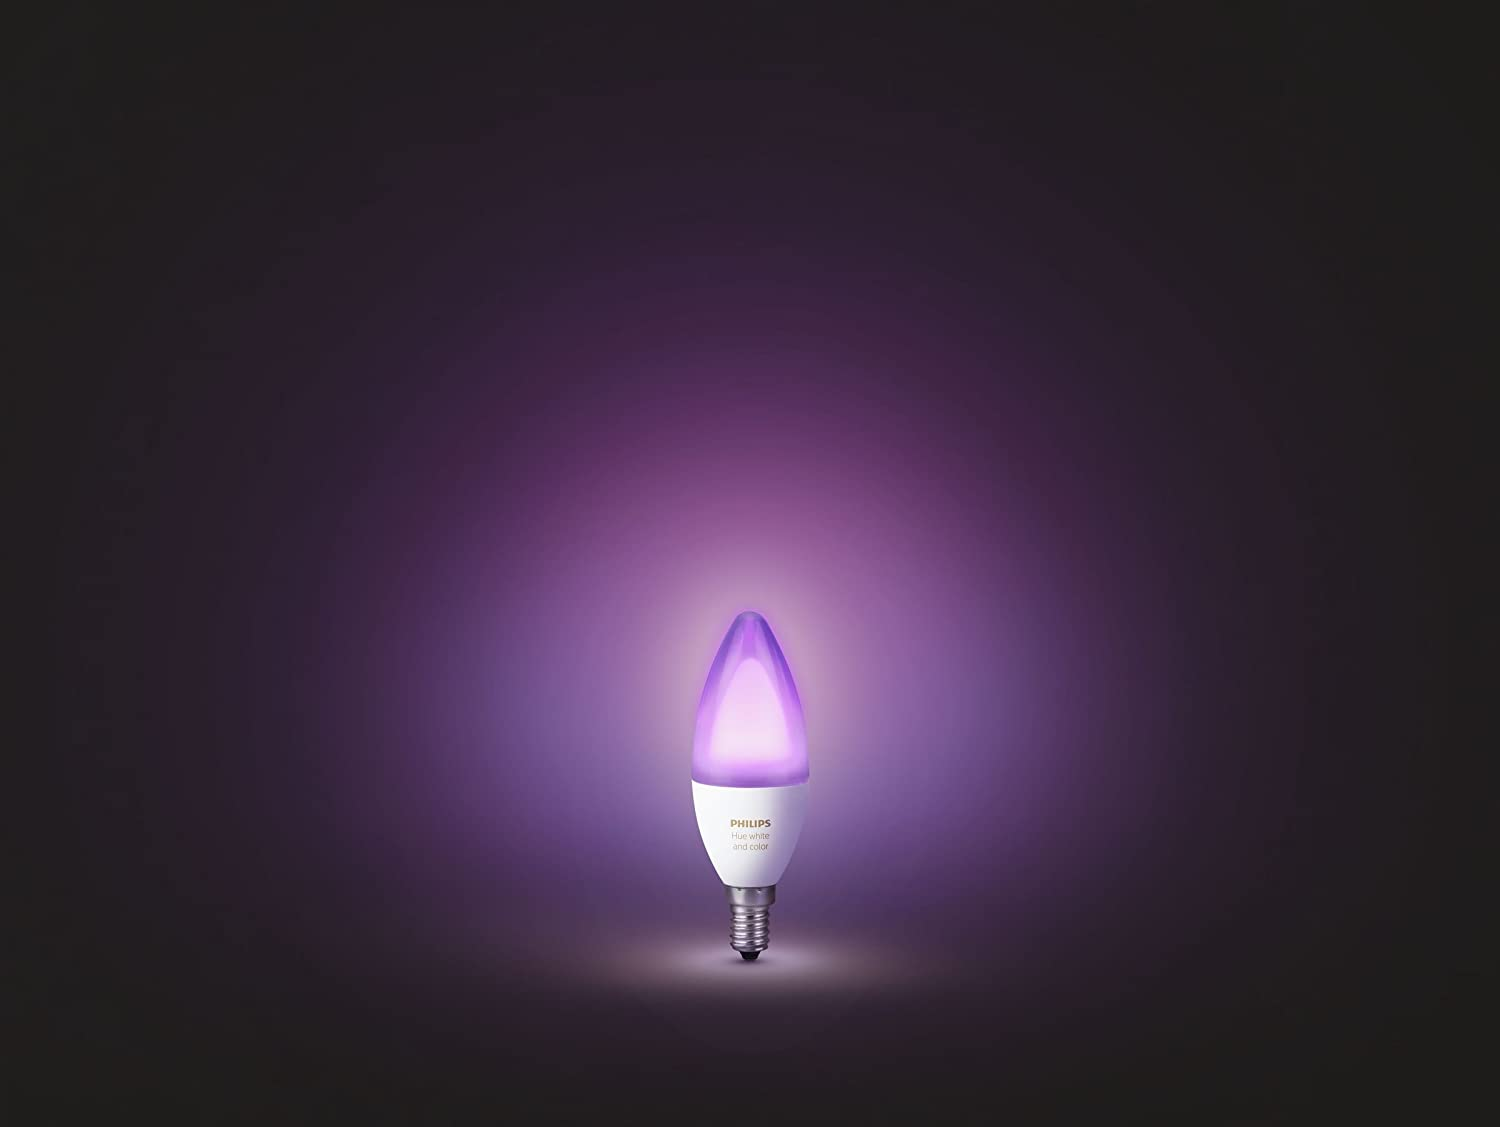 Hue Compatible Lampen : Philips hue white & color ambiance e14 led kerze doppelpack dimmbar